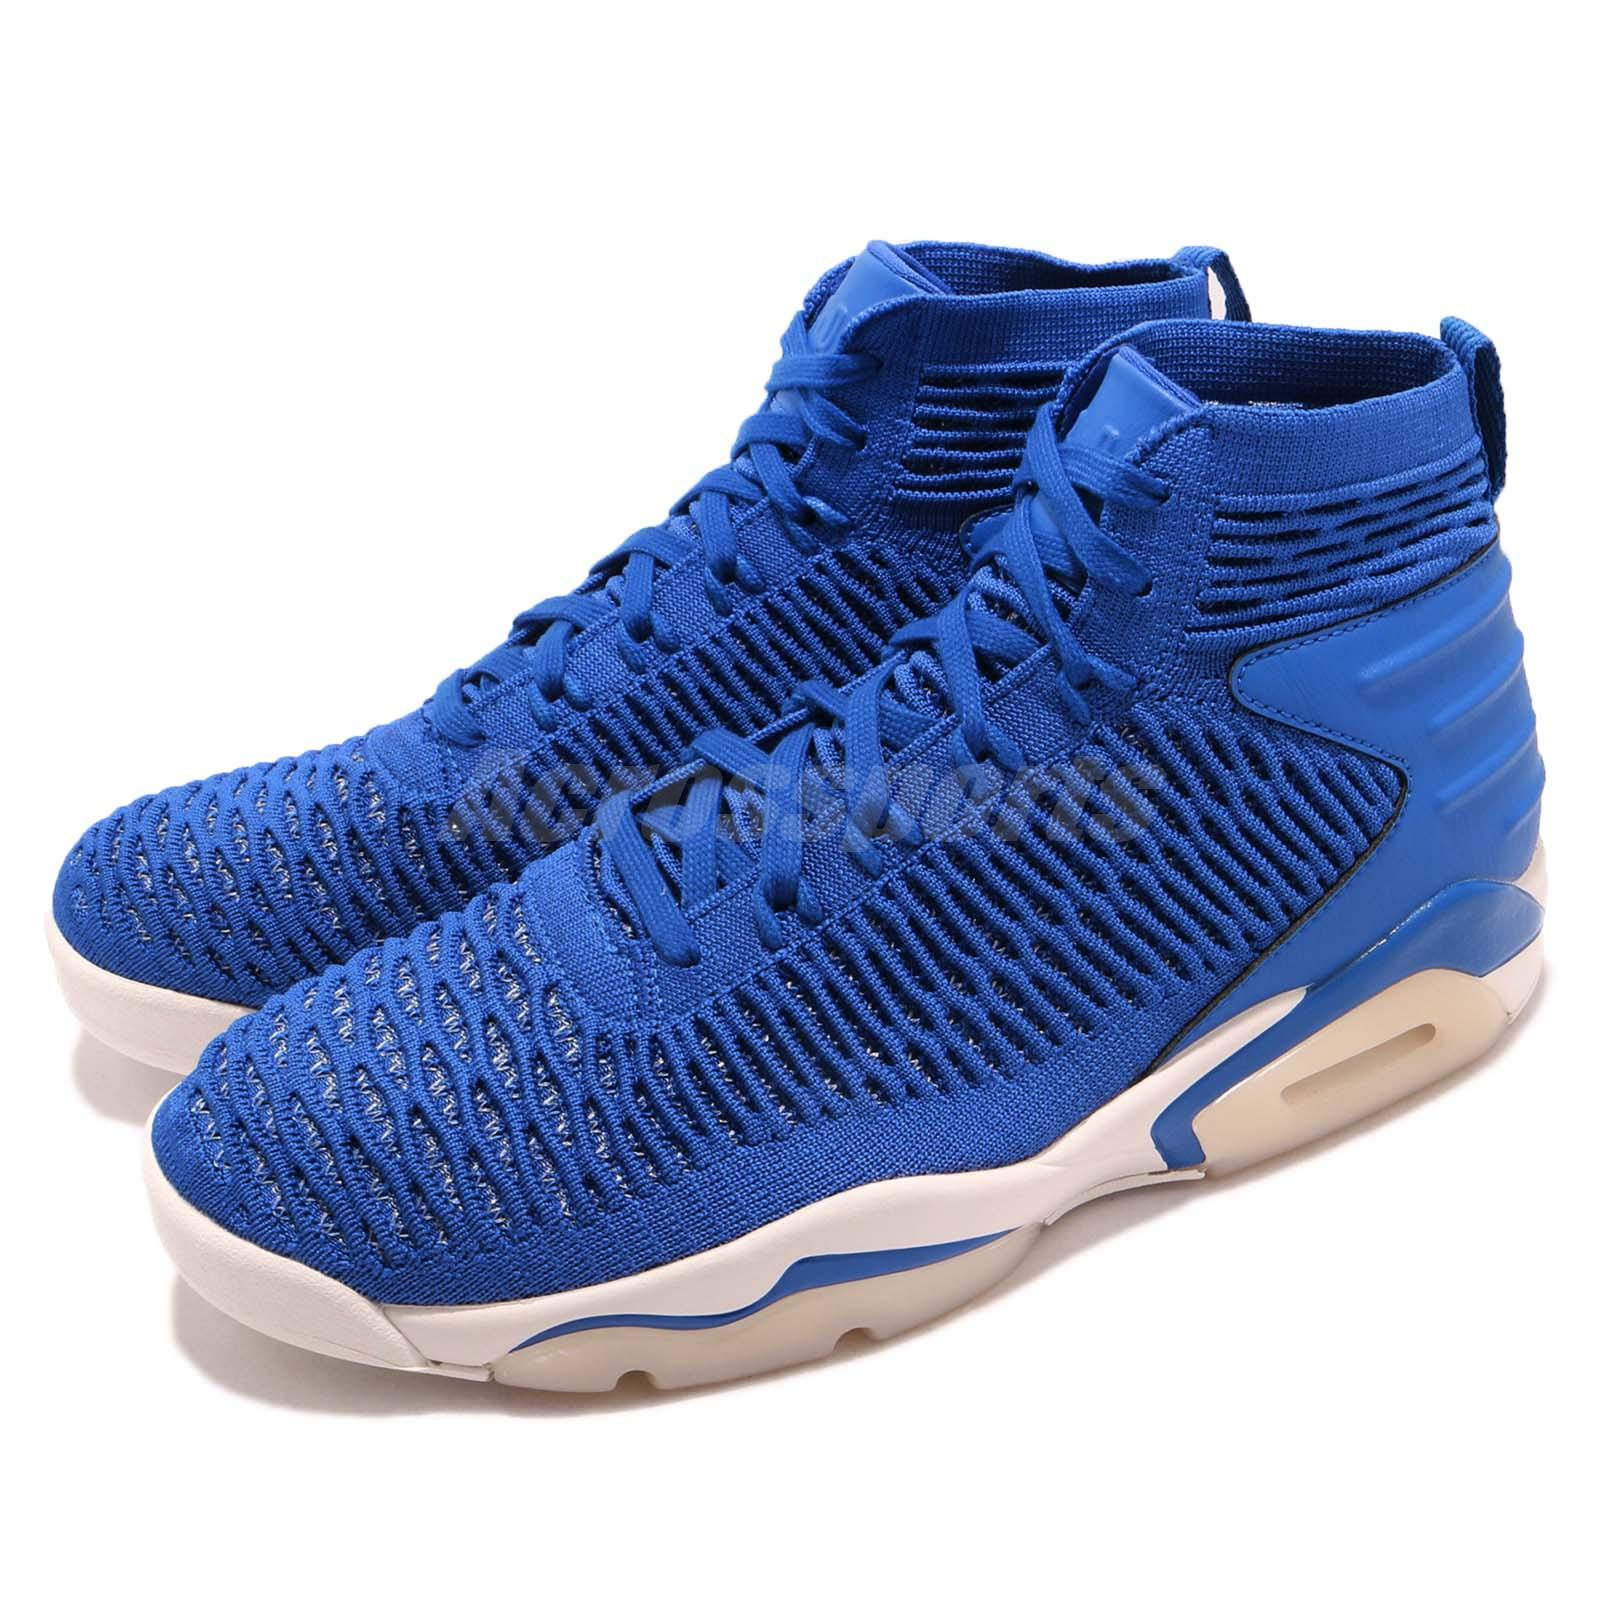 36523f573a2d1 Details about Nike Jordan Flyknit Elevation 23 Game Royal Blue Men  Basketball Shoes AJ8207-401